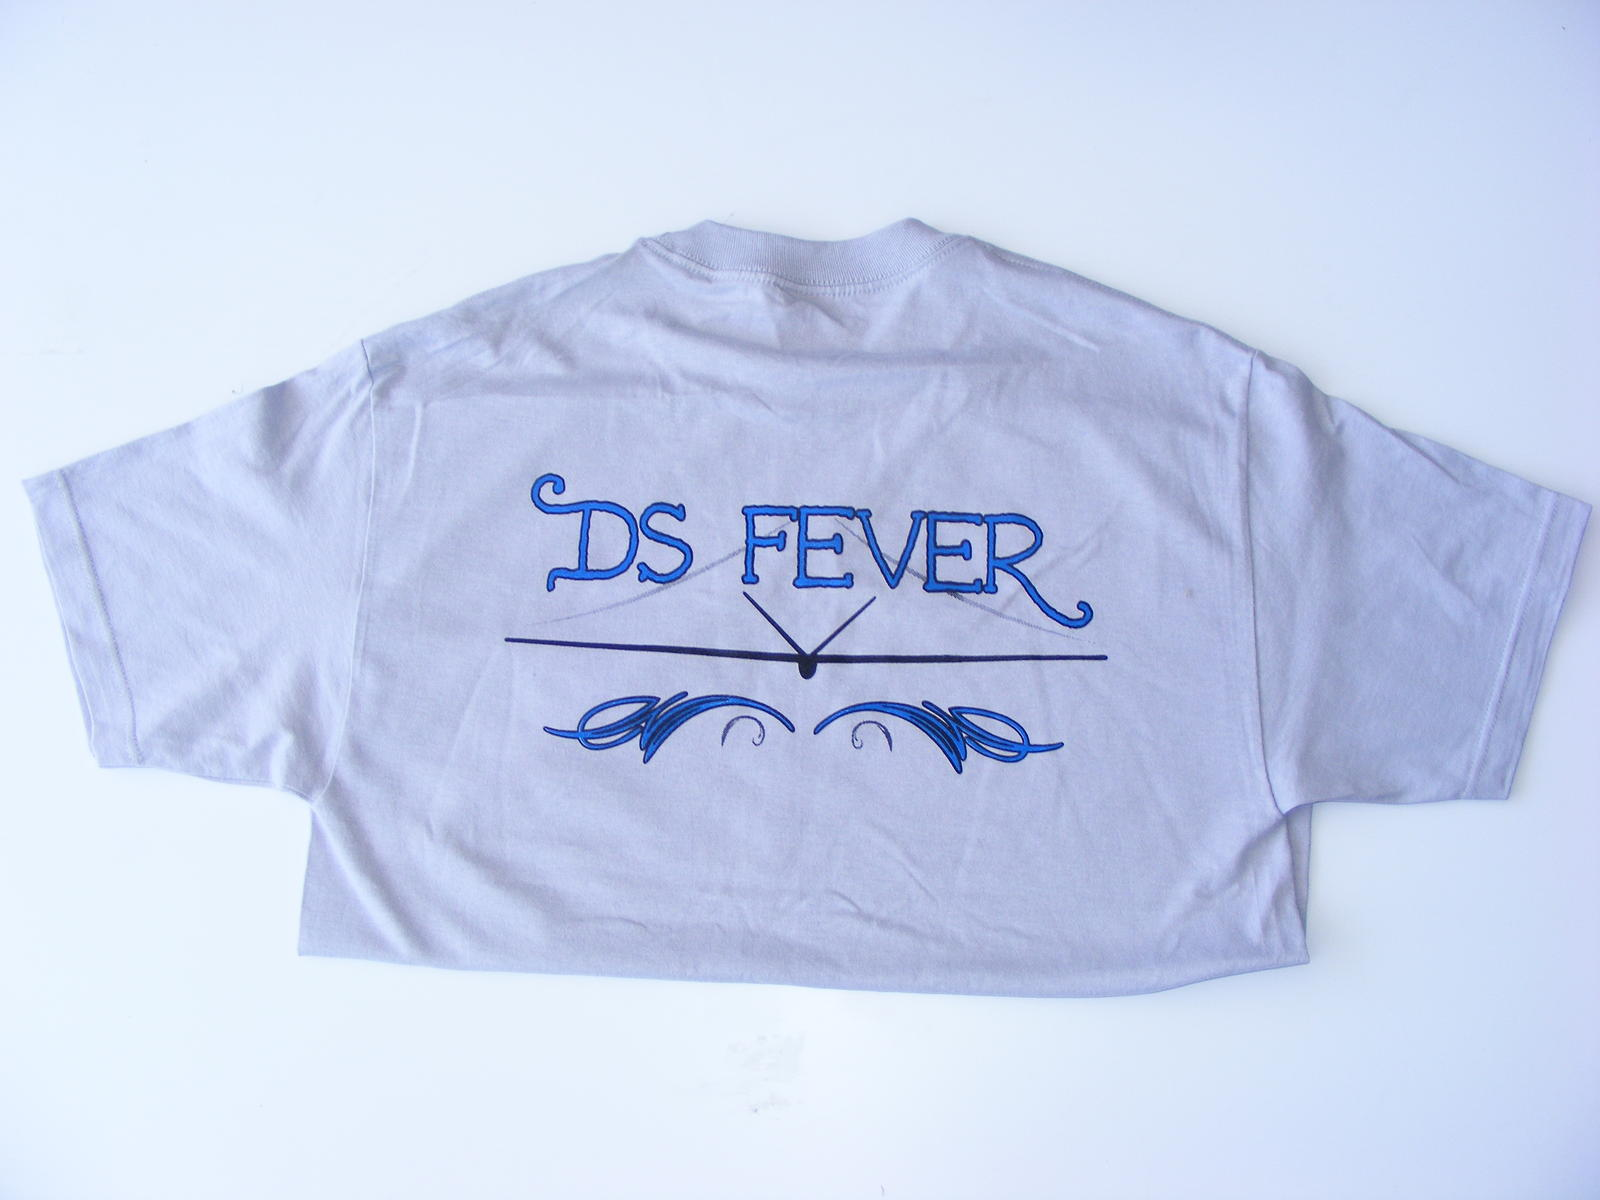 L-XL $15.00 2X $17.00   DS FEVER